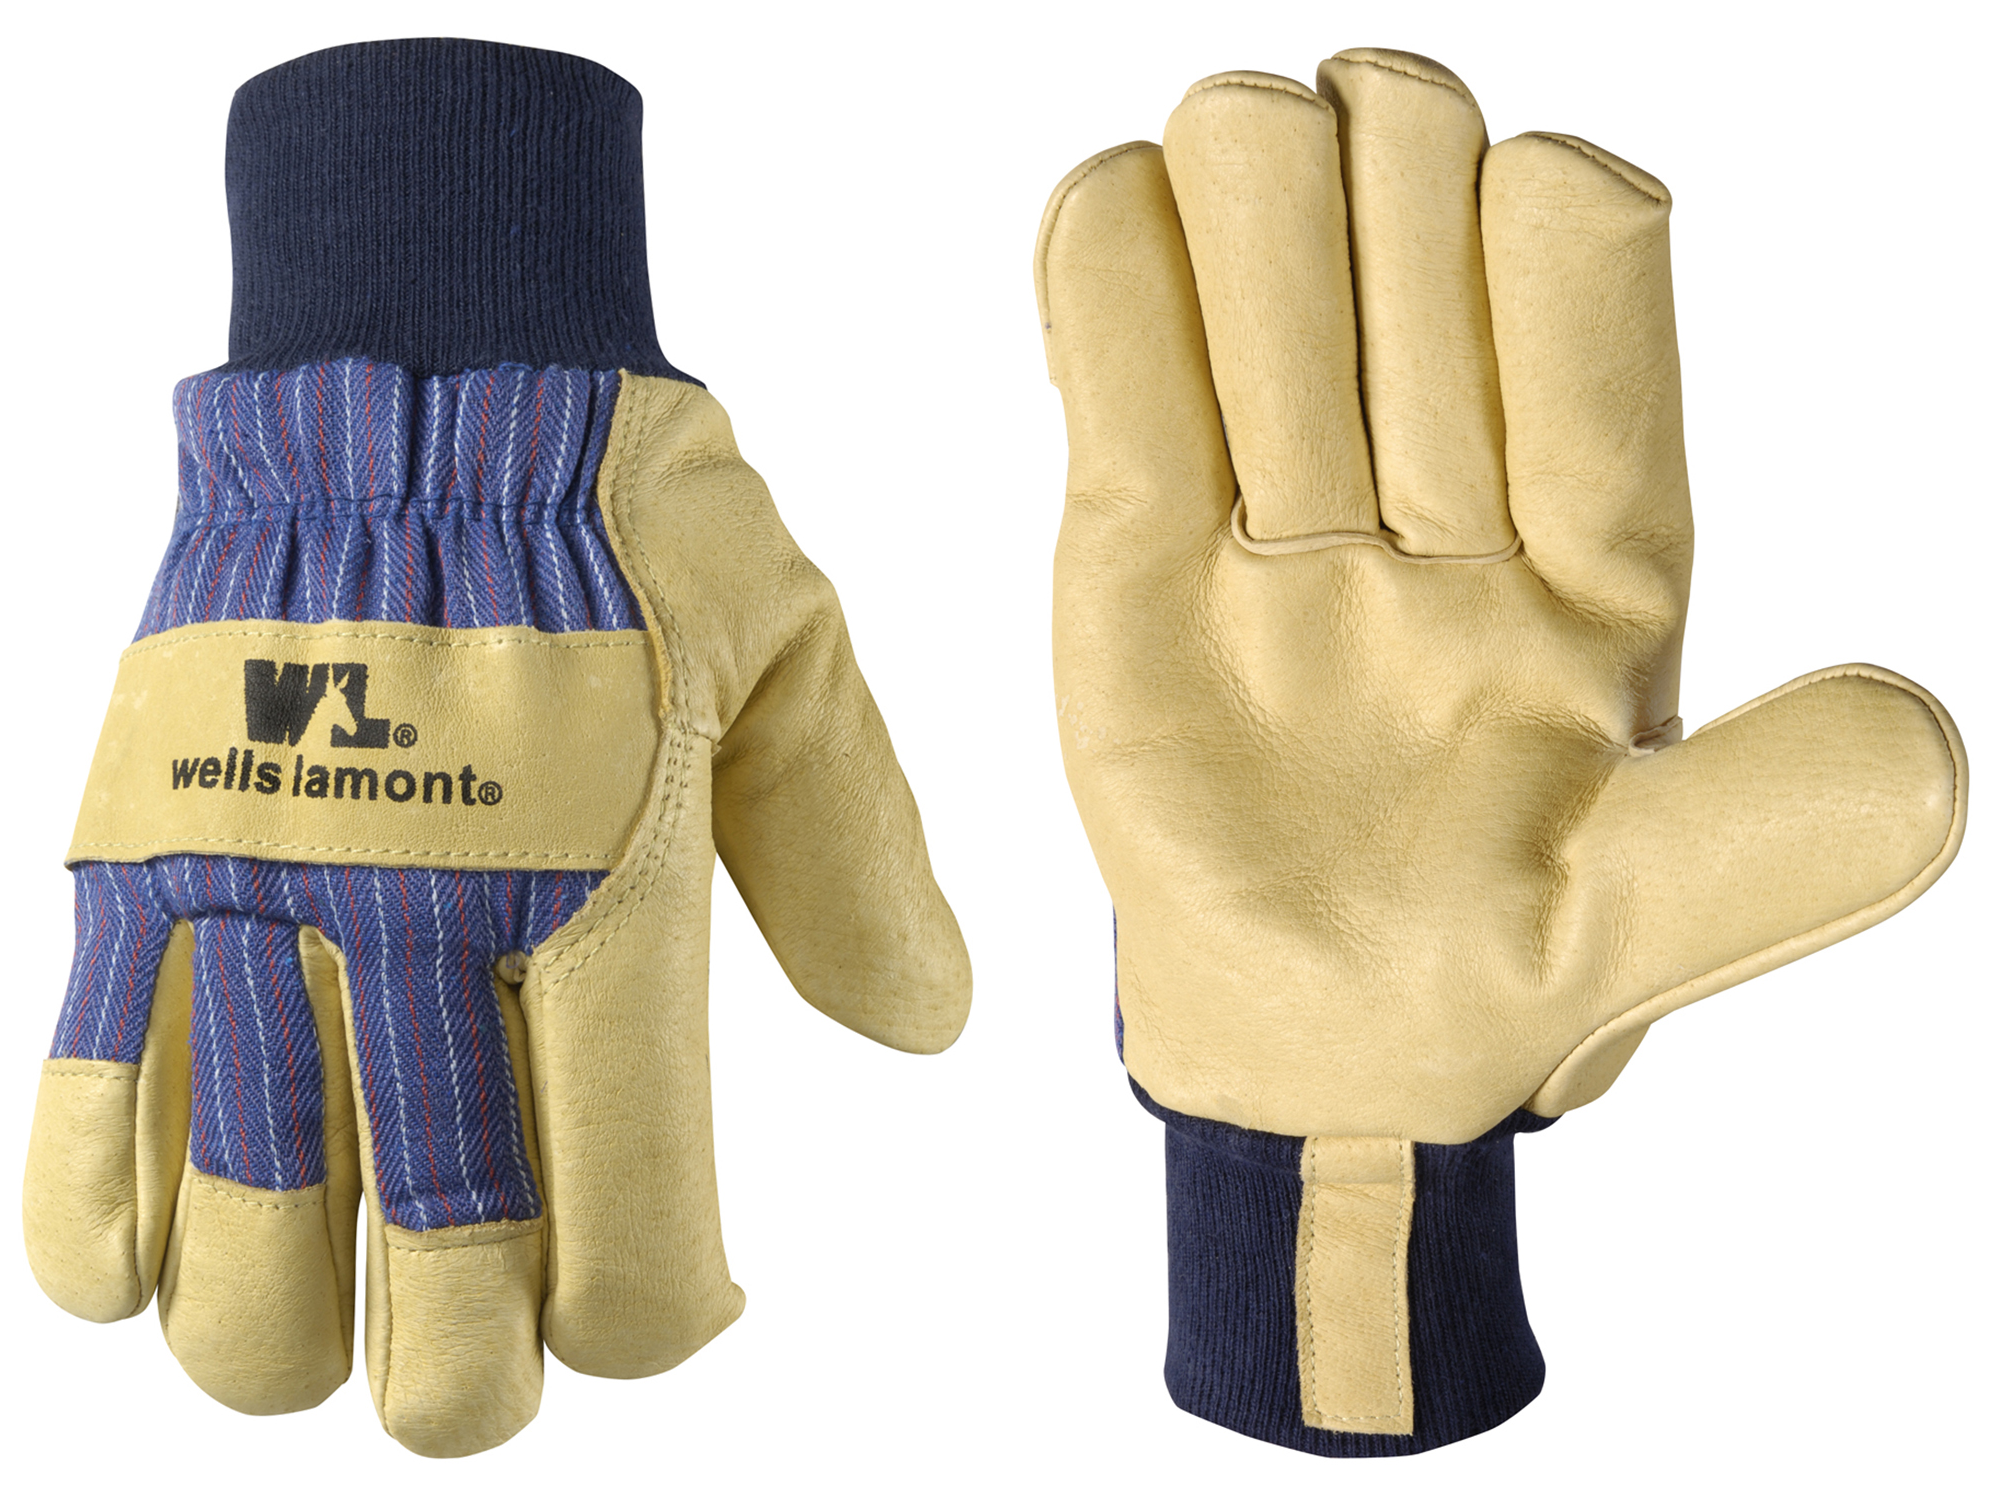 Wells Lamont Leather Palm Work Gloves - All-weather Work